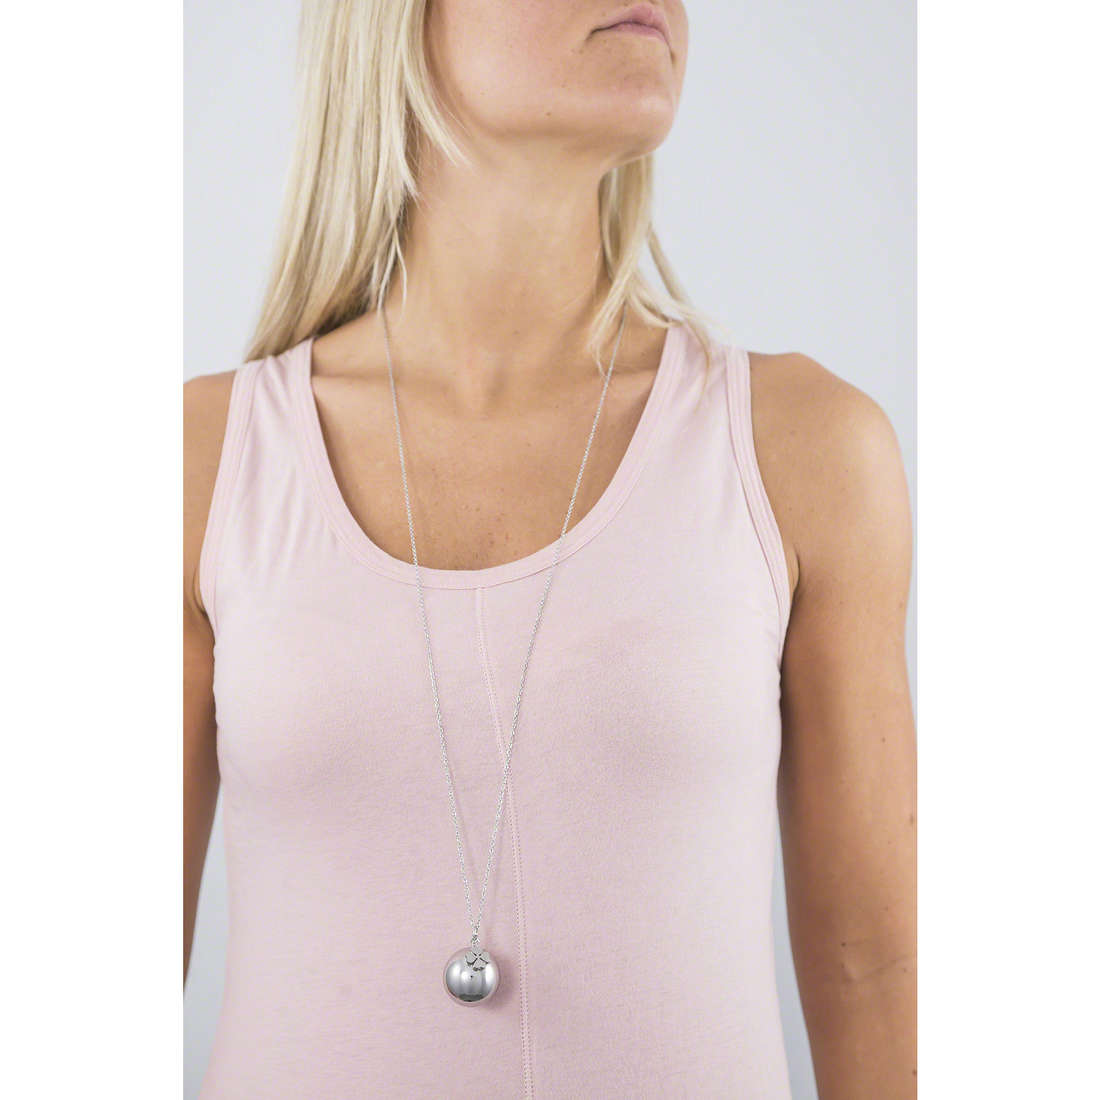 Luca Barra necklaces woman LBCK768 indosso